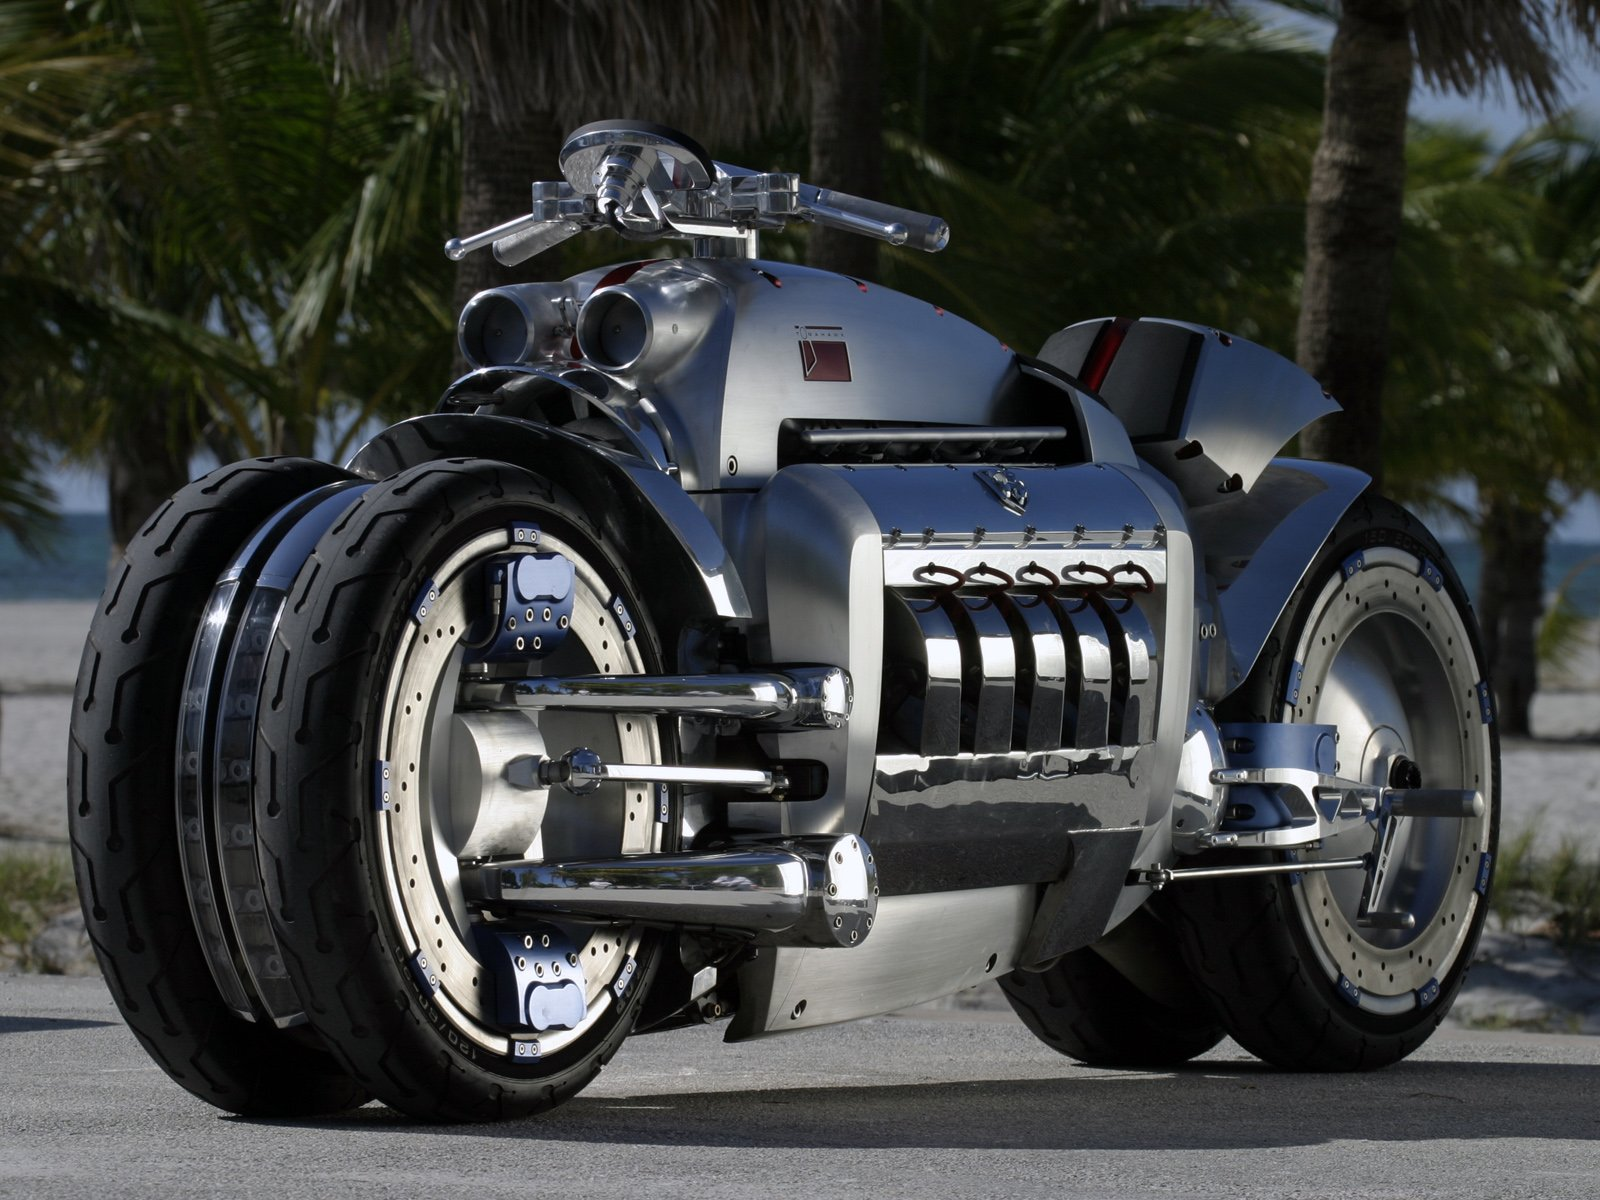 Dodge Tomahawk : Can't afford sports car? Then this is for you.